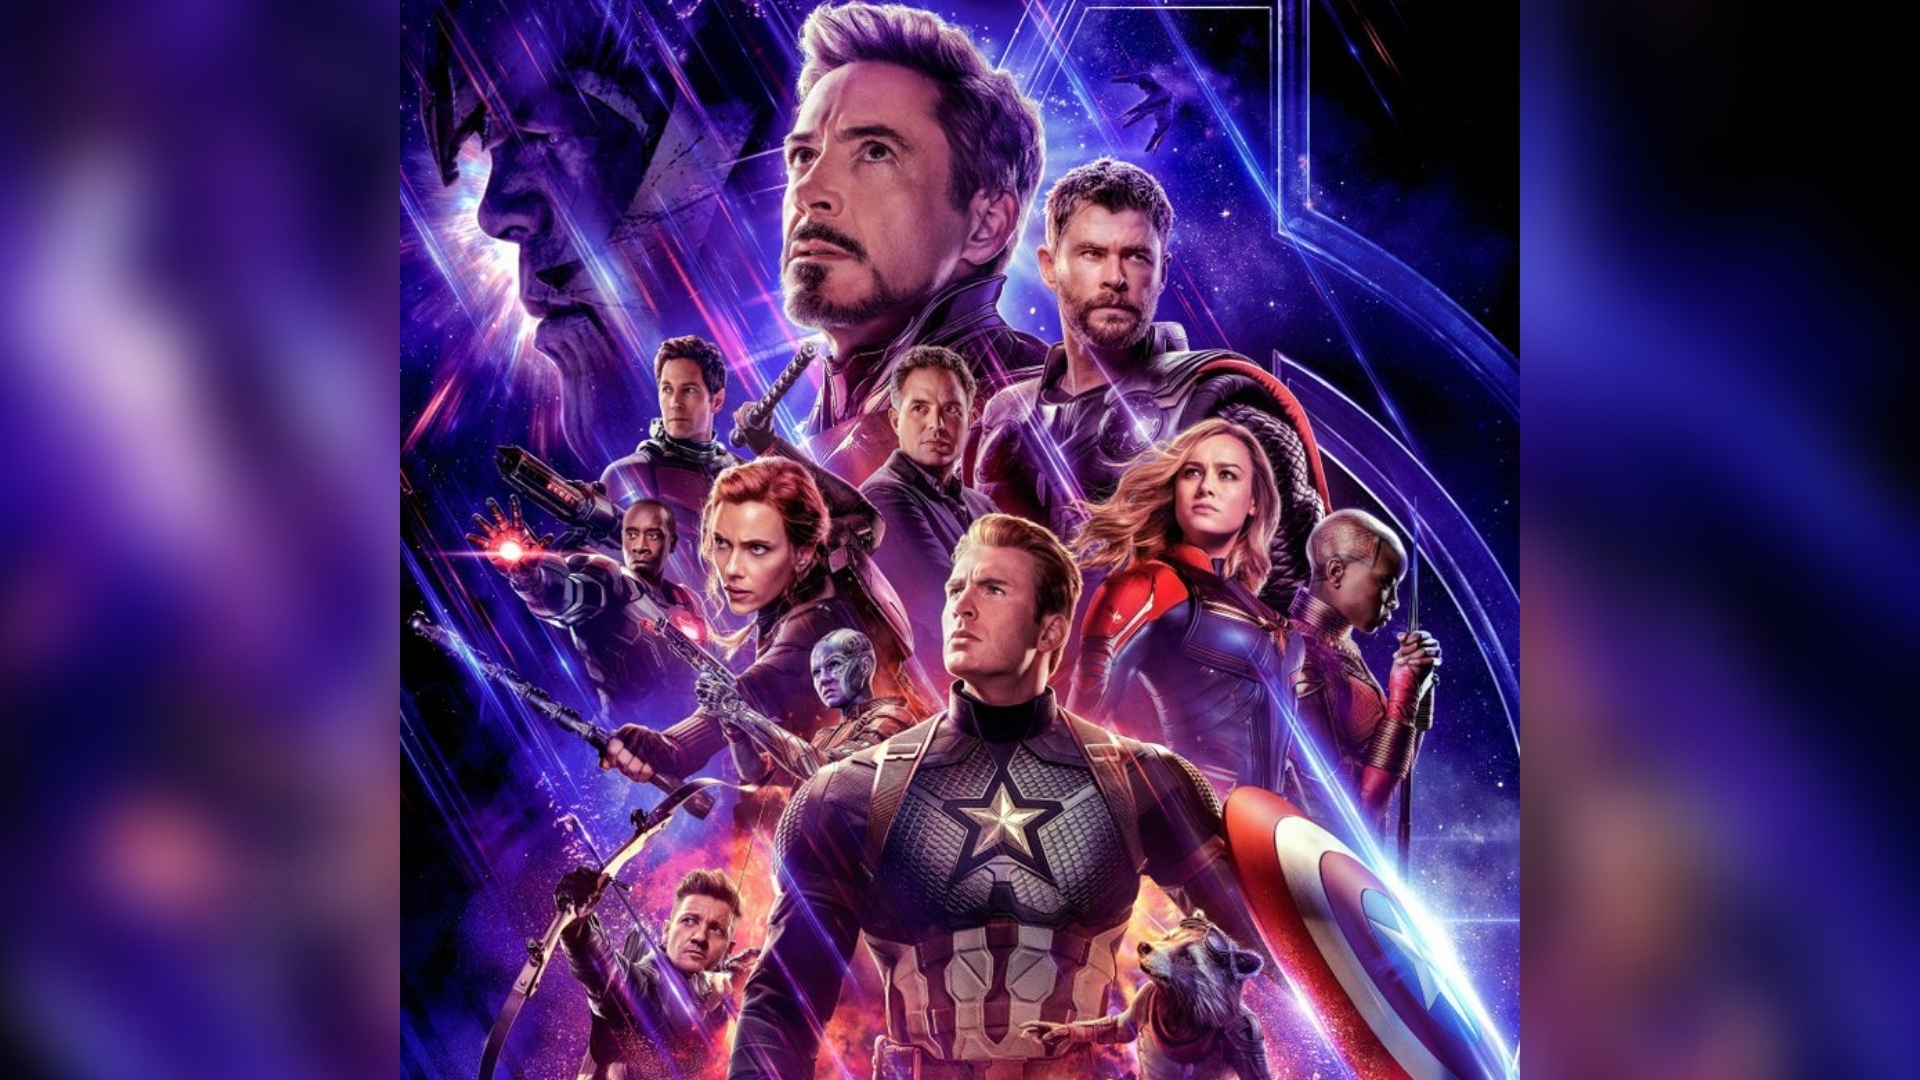 Avengers Endgame To Be The Longest Marvel Movie At 182 Minutes